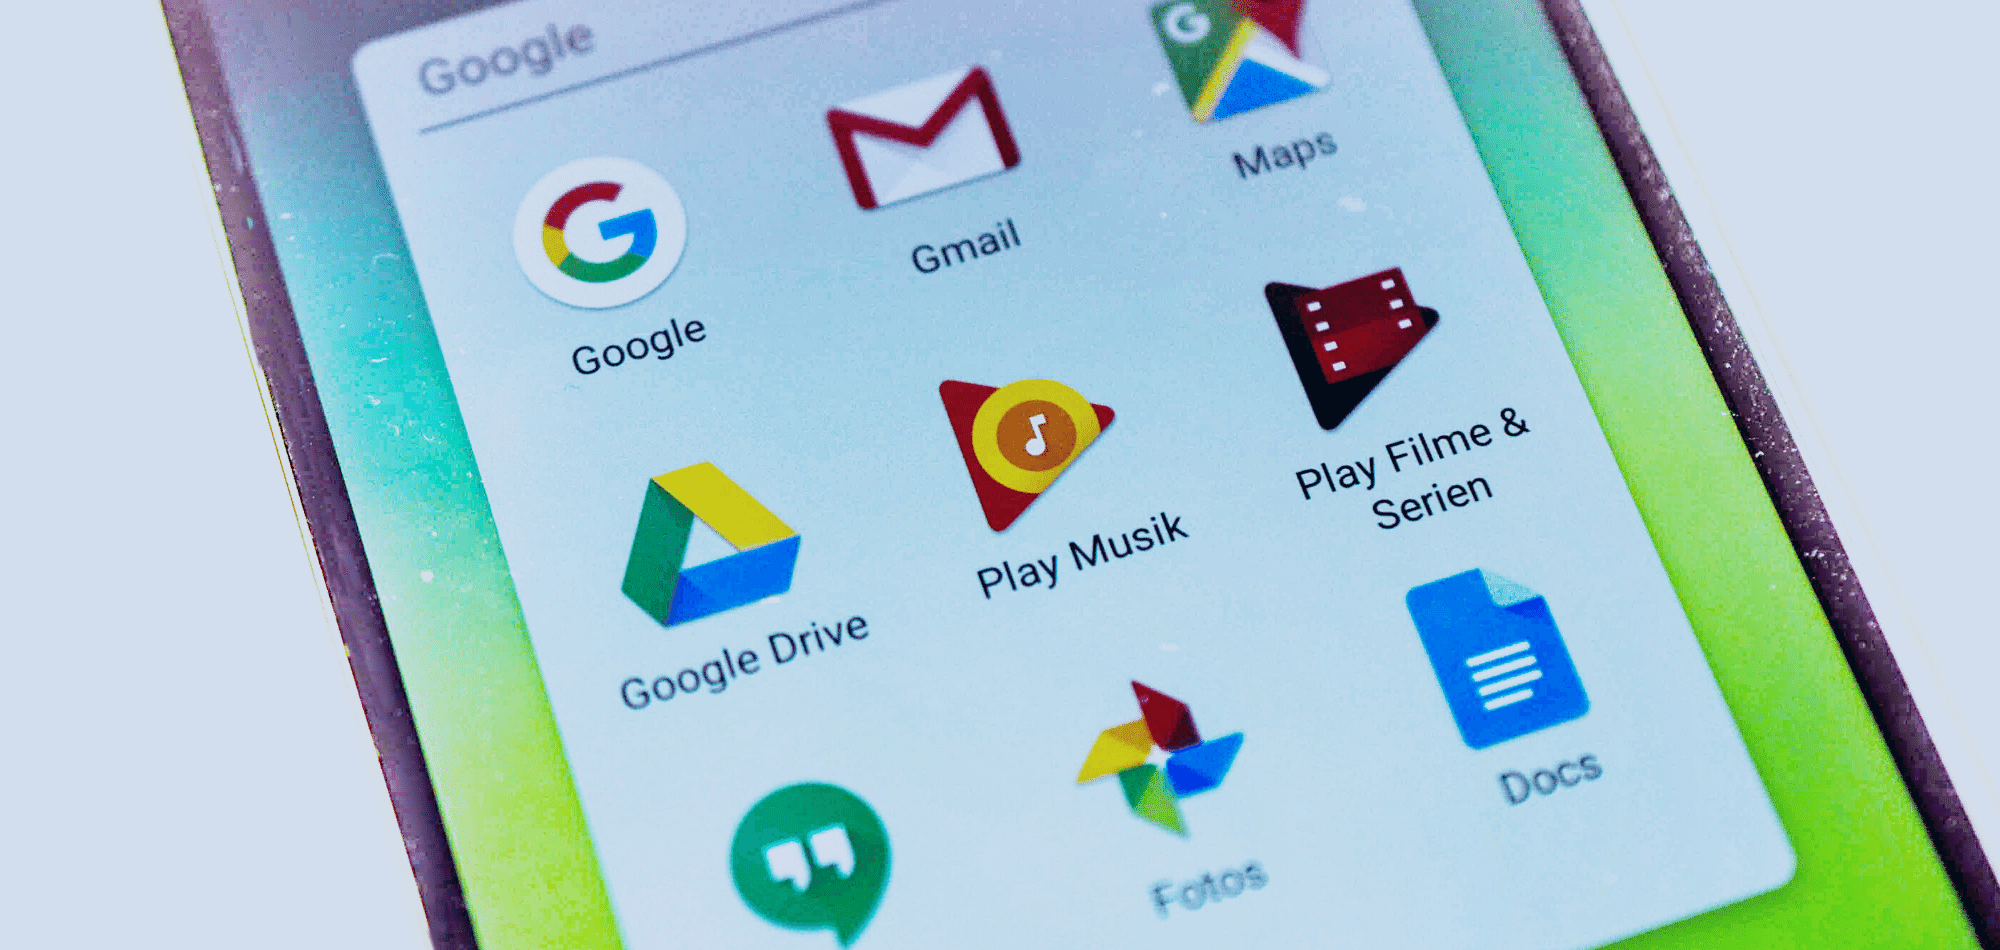 Google applications used in k12 schools